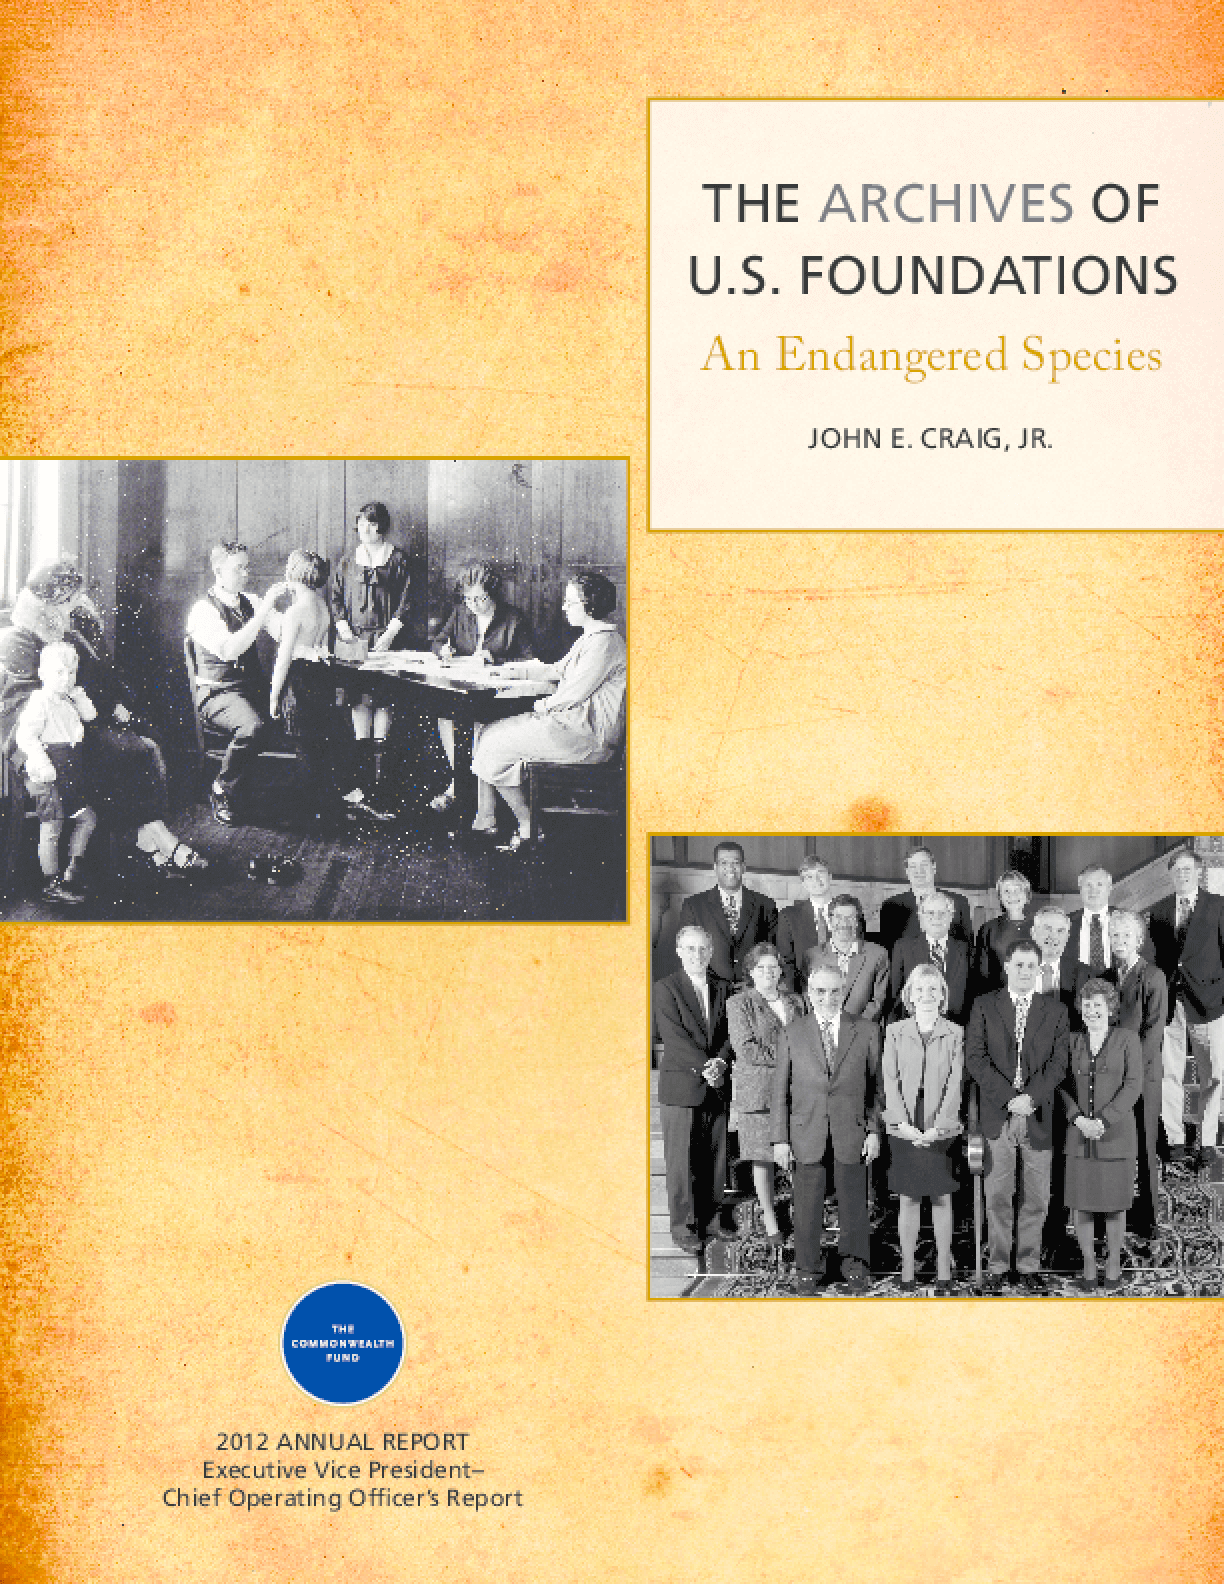 The Archives of U.S. Foundations: An Endangered Species